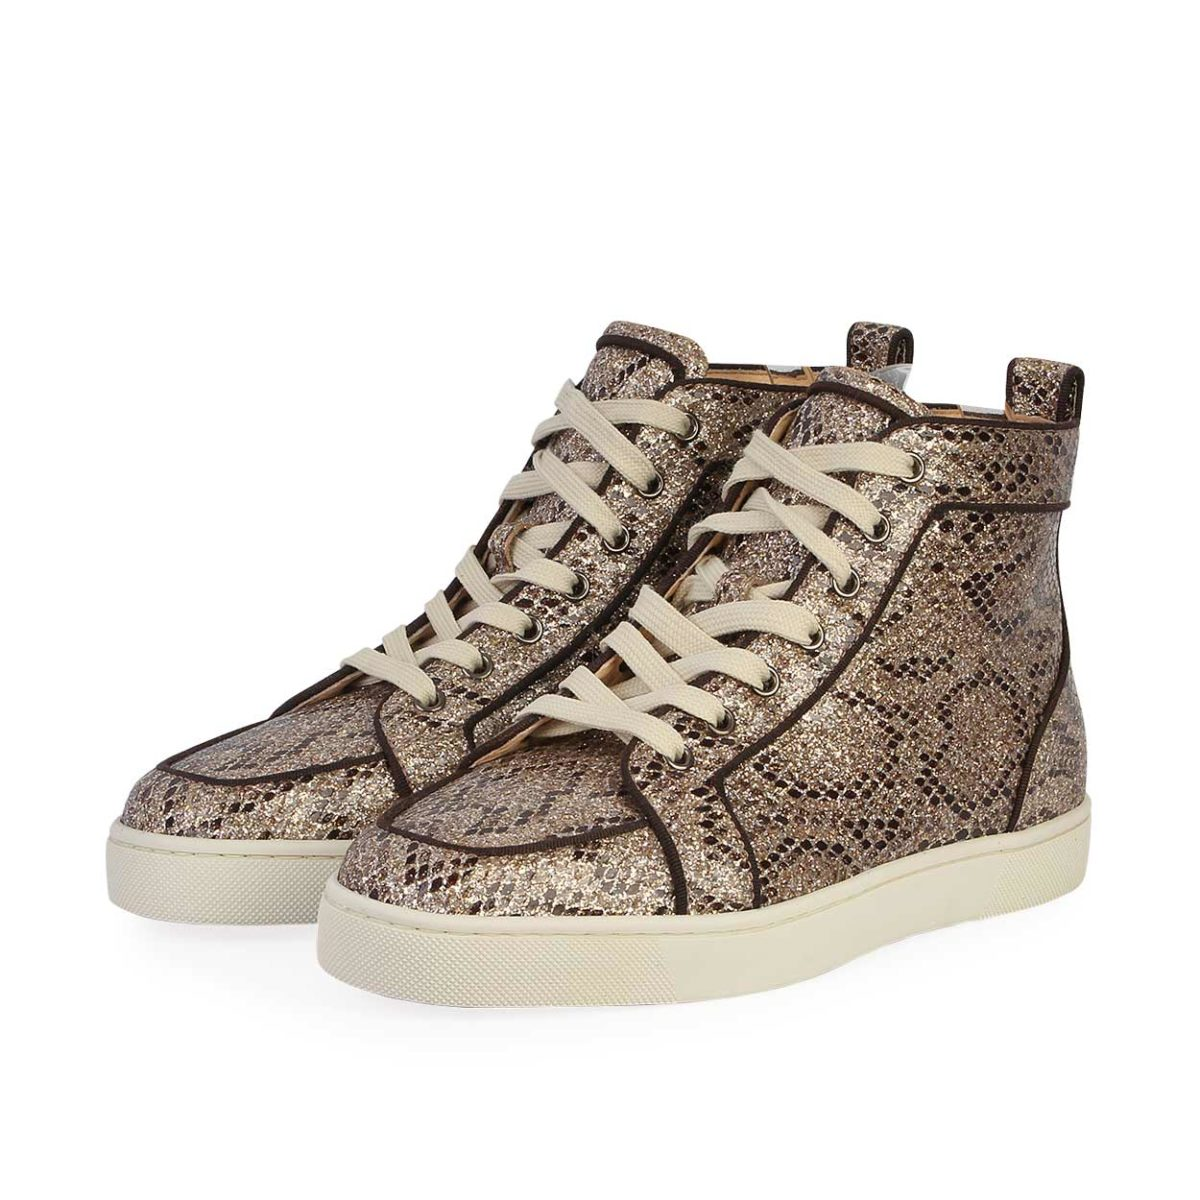 100% authentic 116ae 95e3d CHRISTIAN LOUBOUTIN Python Rantus Orlato High Top Sneakers Gold - S: 40  (6.5)